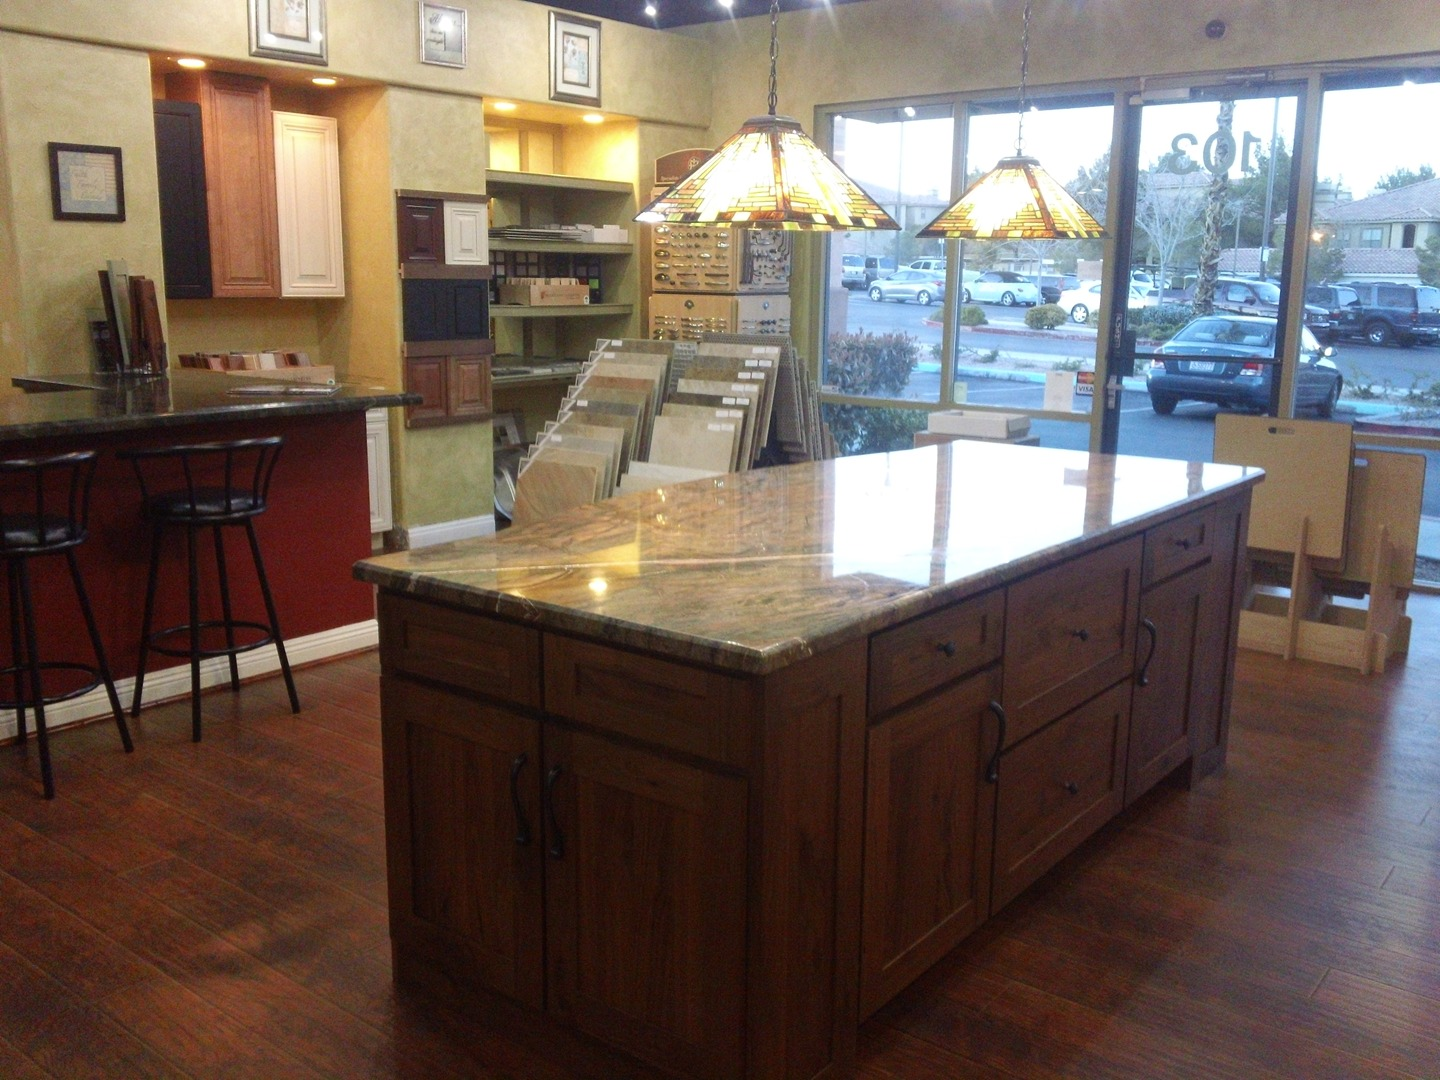 Black Walnut Kitchen Cabinets Kitchen Cabinets Las Vegas Showroom Artizen Full Access Cabinets